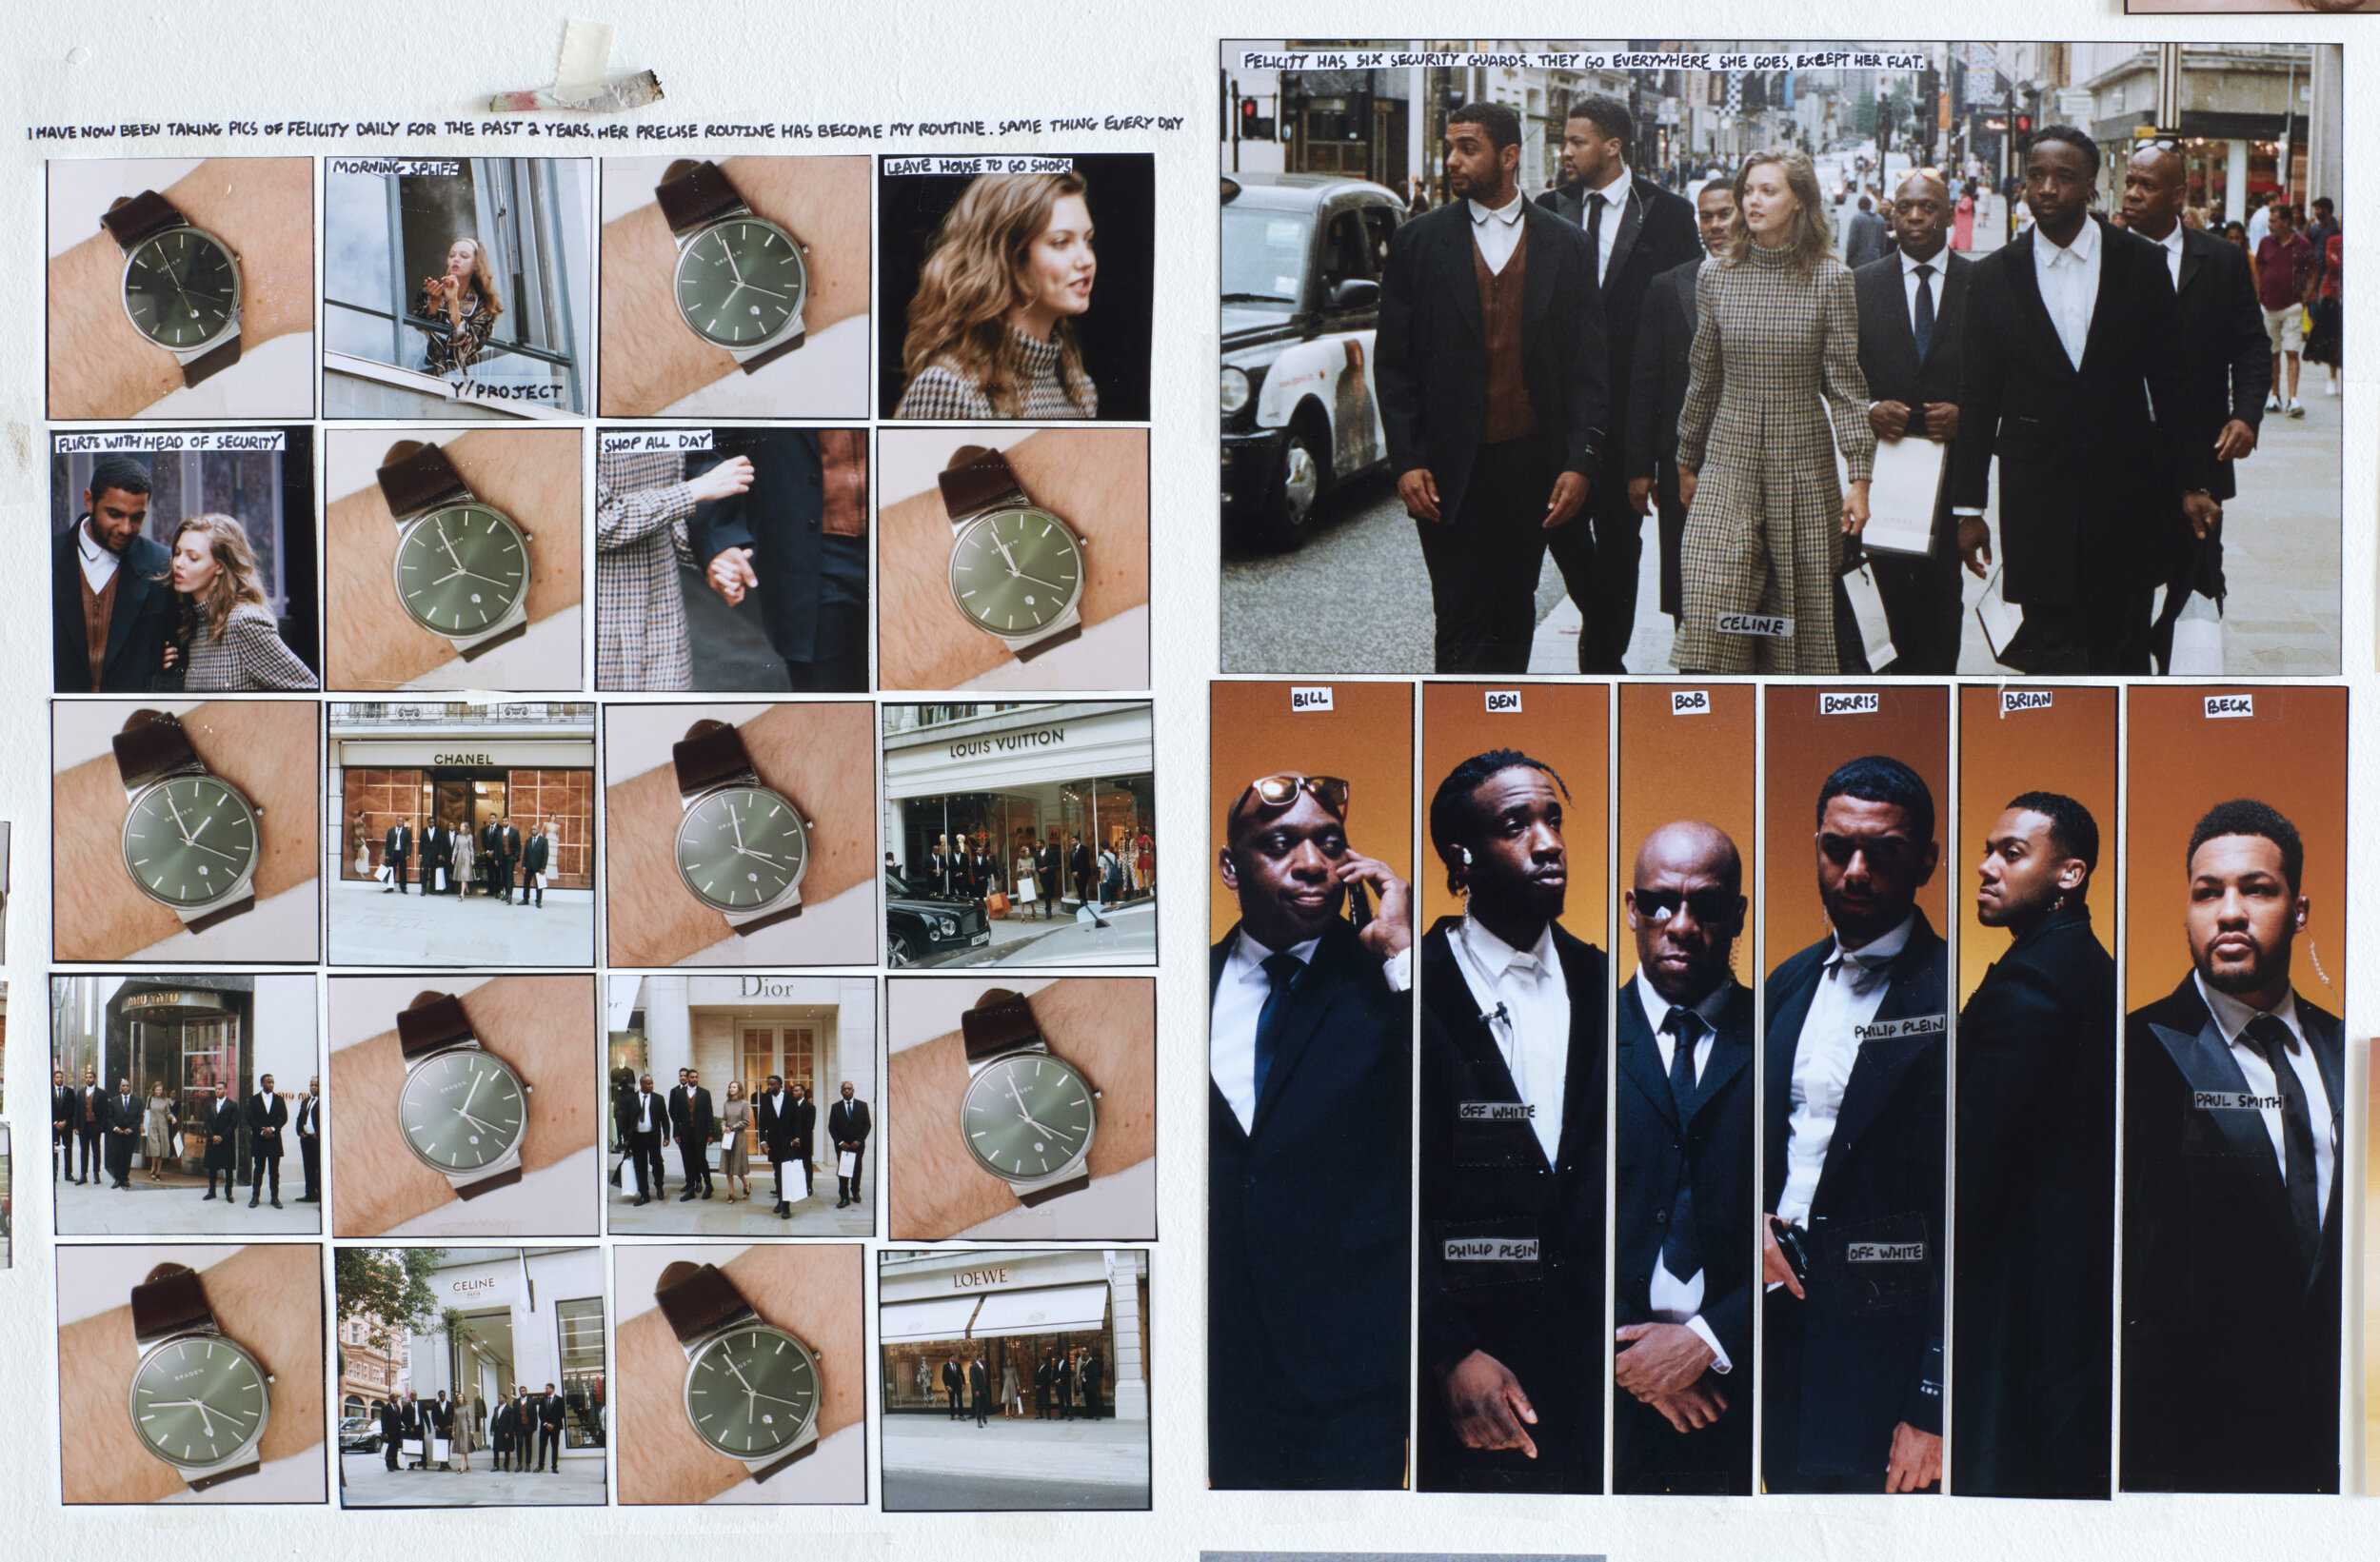 FL_TheFace_Collages_06_F01.jpg